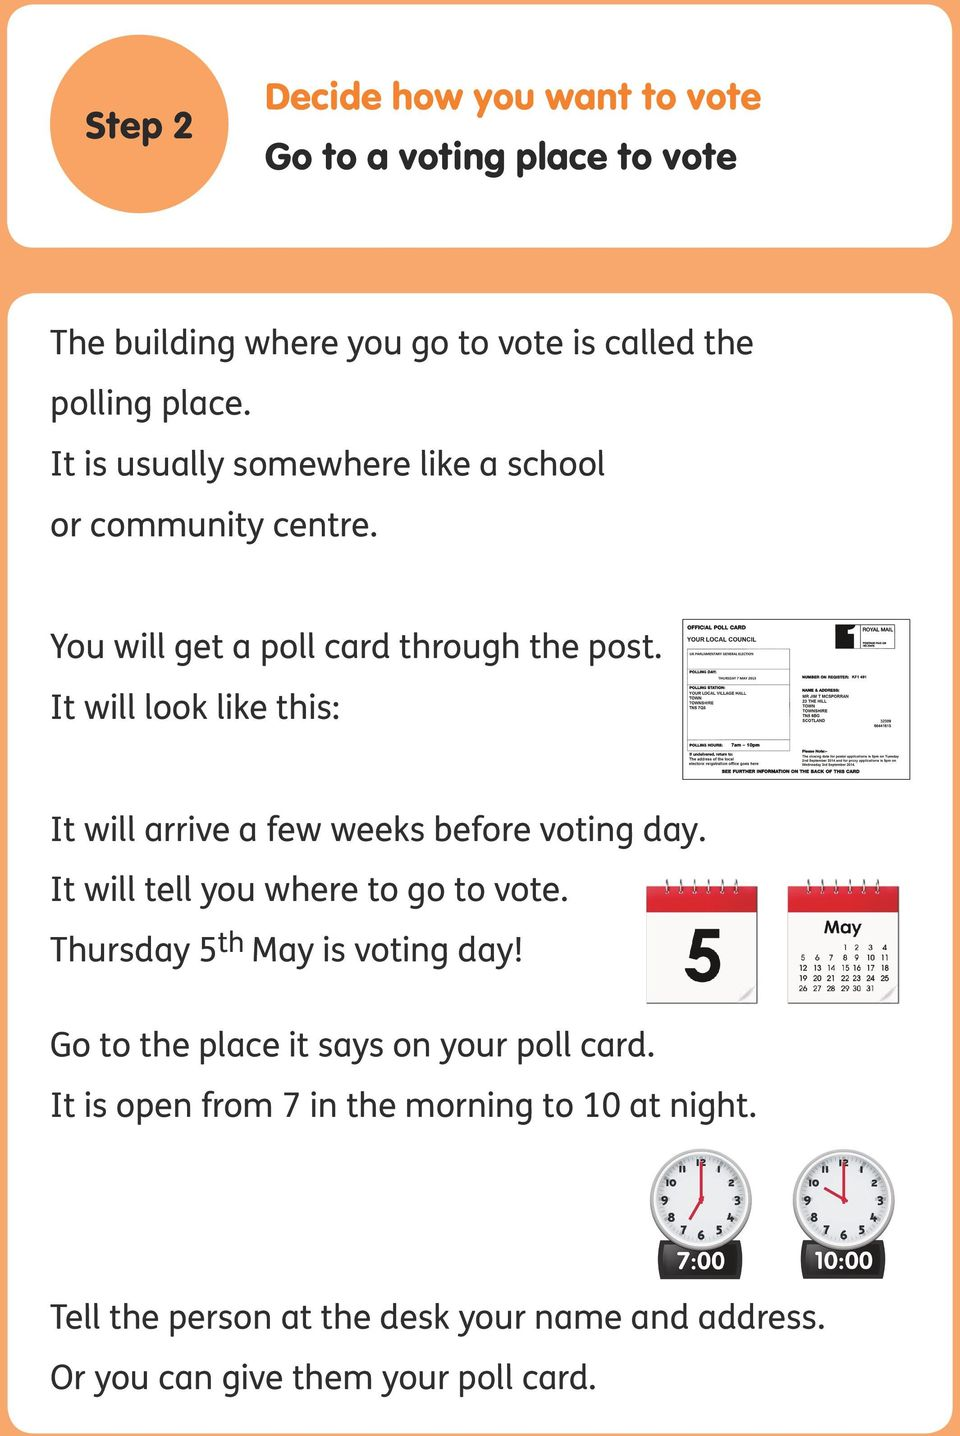 It will look like this: It will arrive a few weeks before voting day. It will tell you where to go to vote.